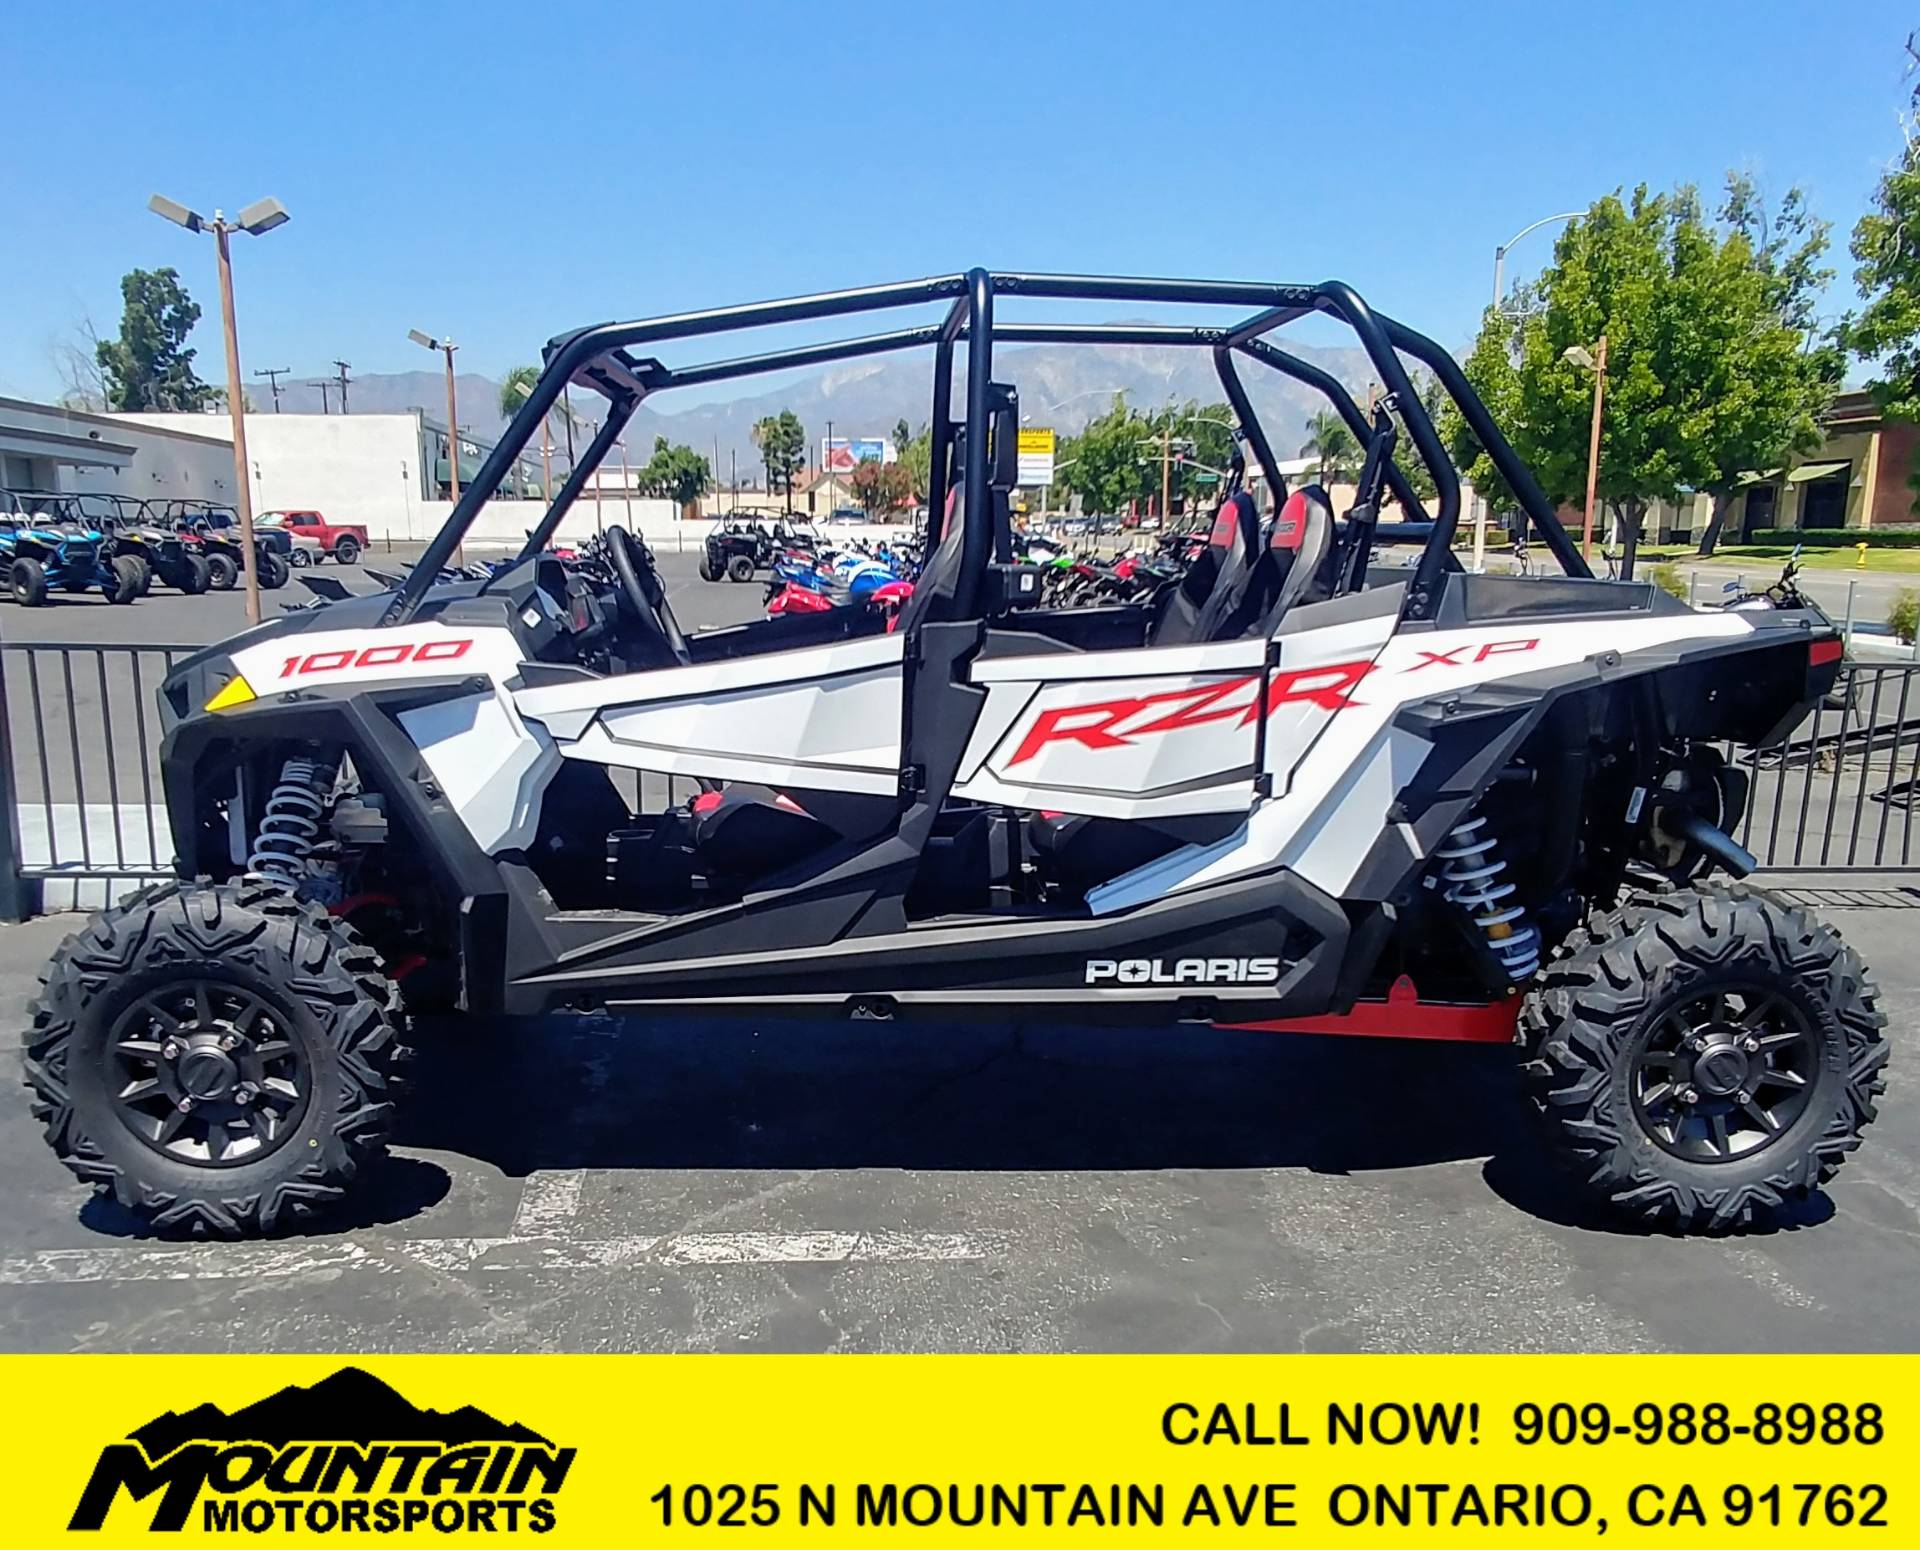 2020 Polaris RZR XP 4 1000 in Ontario, California - Photo 1